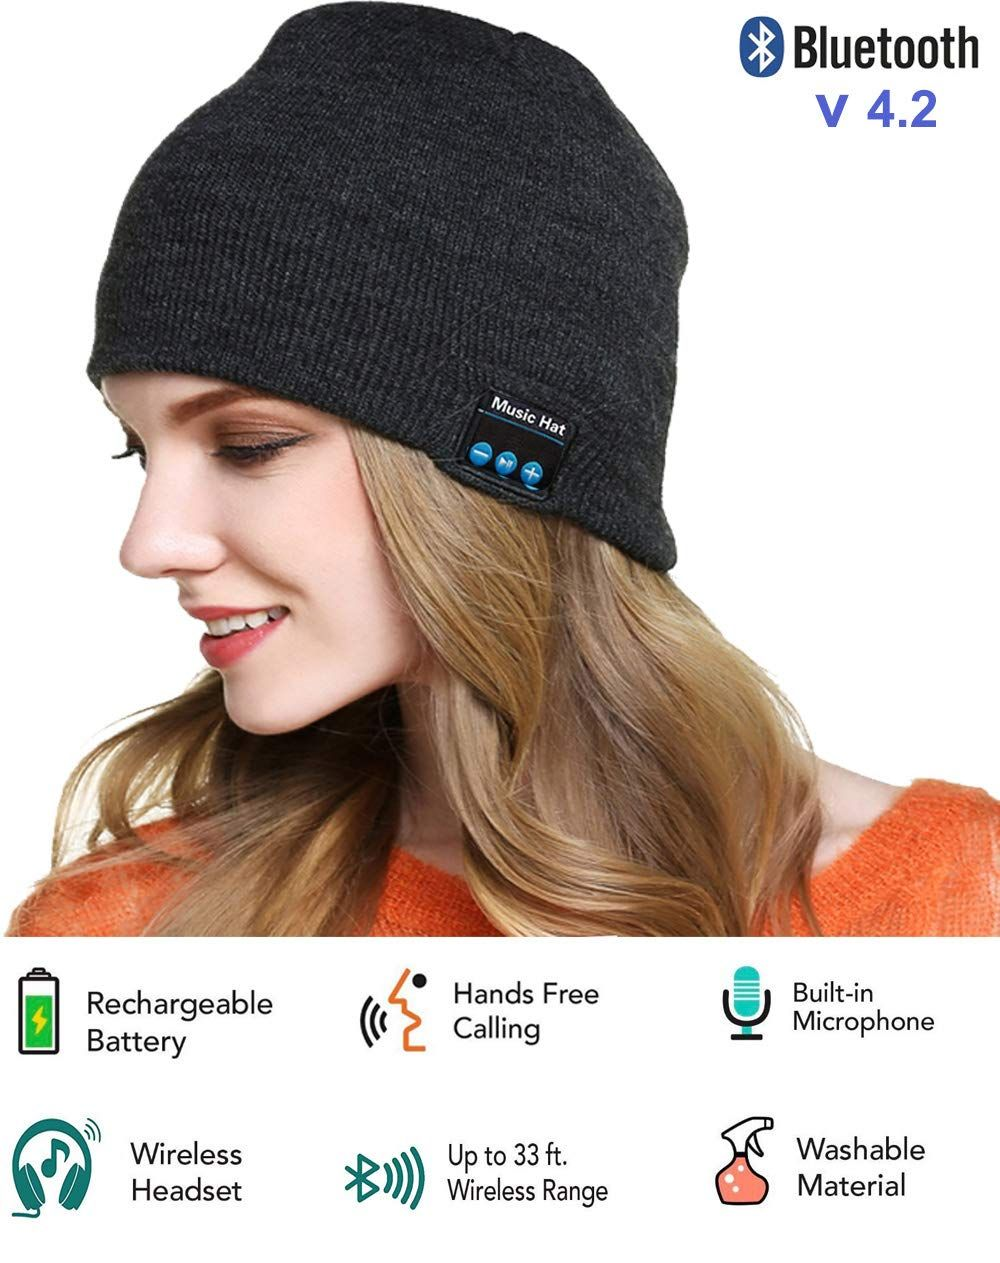 958d87020520f Winter Bluetooth Beanie Hat Unisex 4.1 Wireless Smart Musical Headphone  Speaker Beanies HandsFree Knit Cap Headset